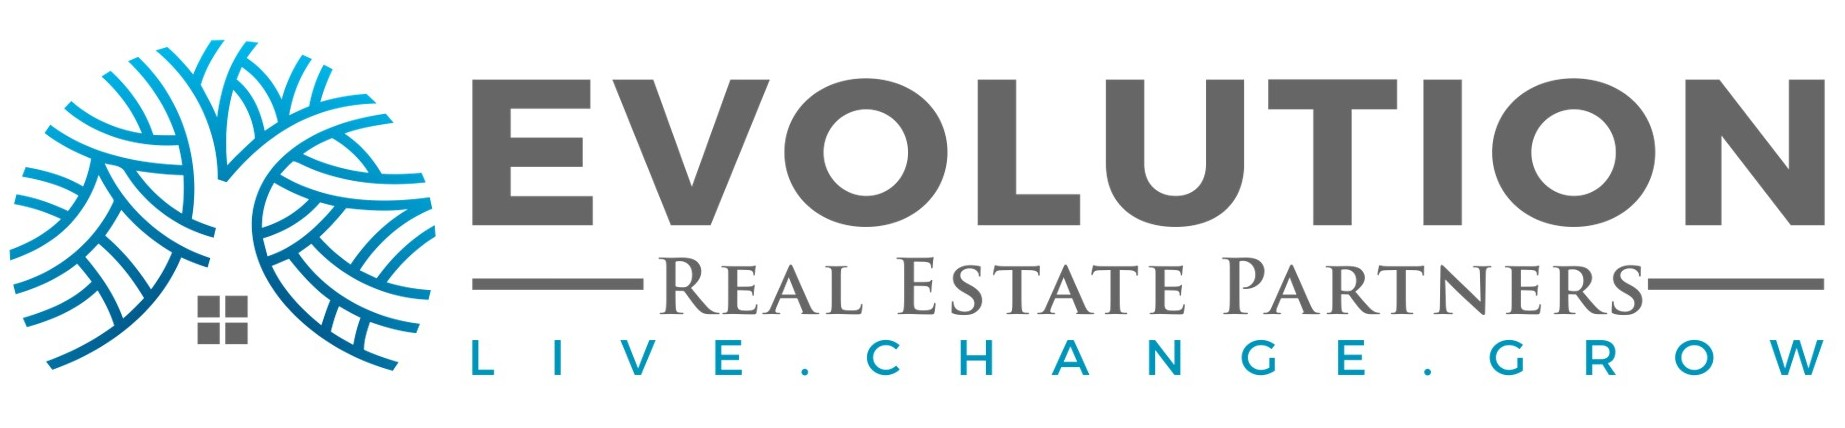 Evolution Real Estate Partners / Keller Williams Realty WM logo